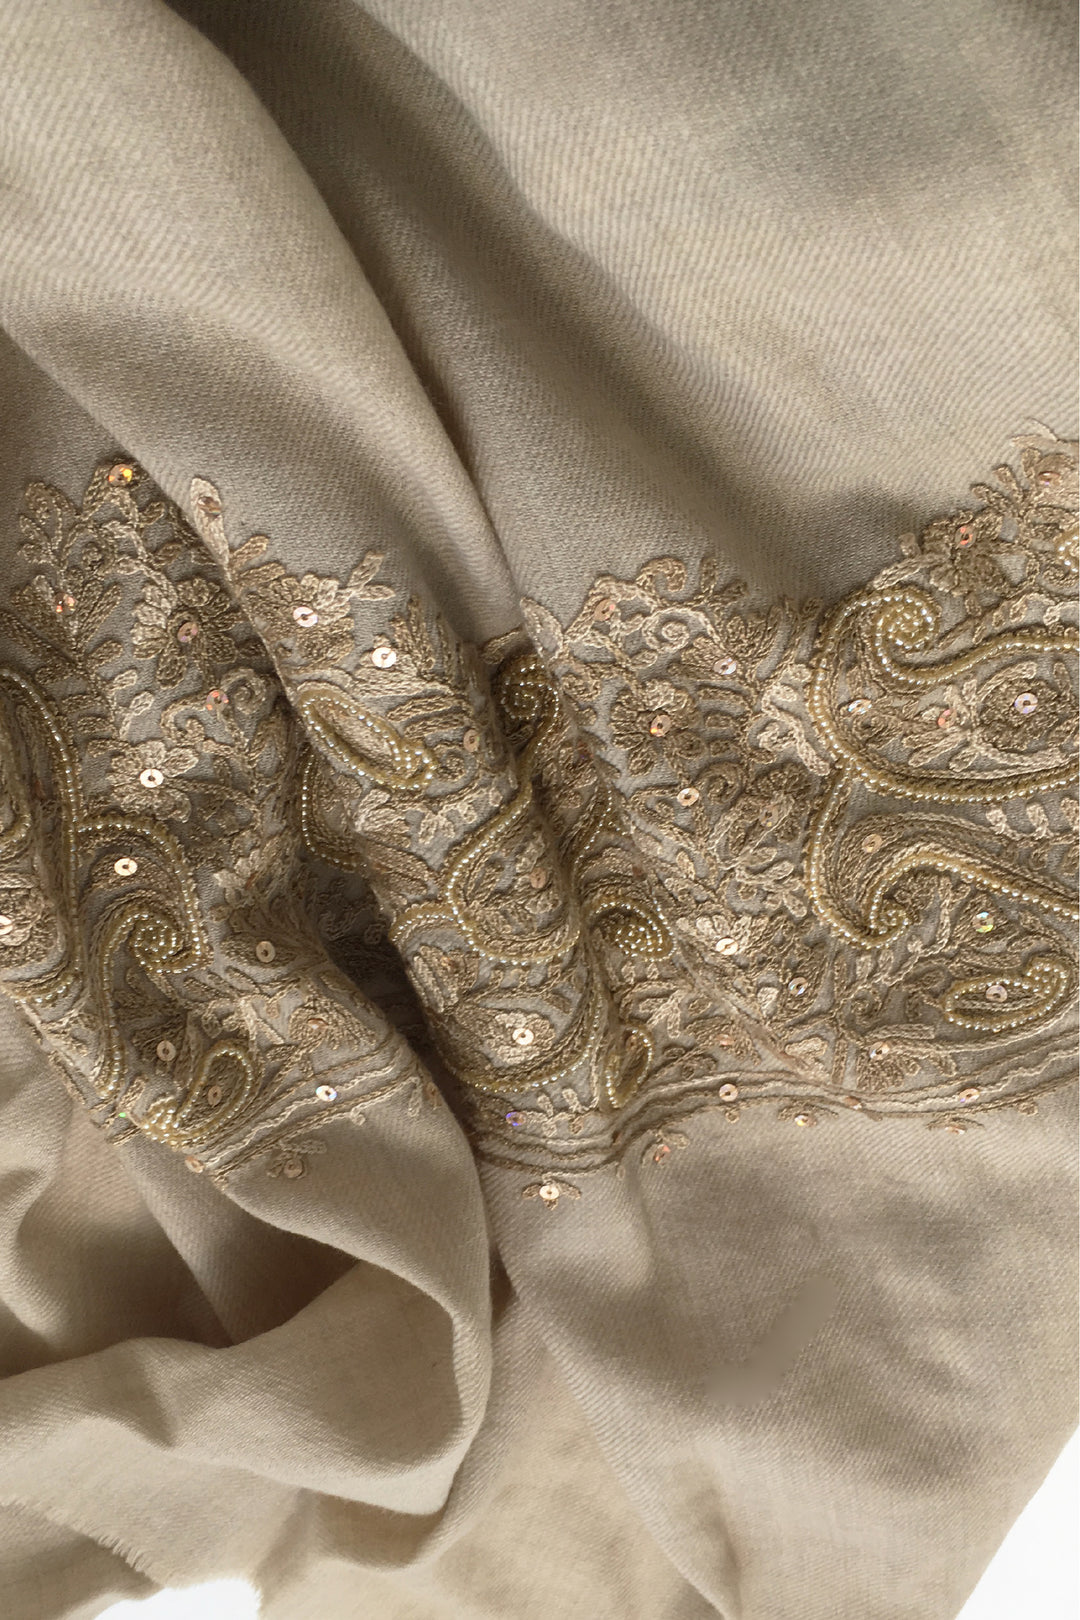 High tea in delhi embroidered wool shawl